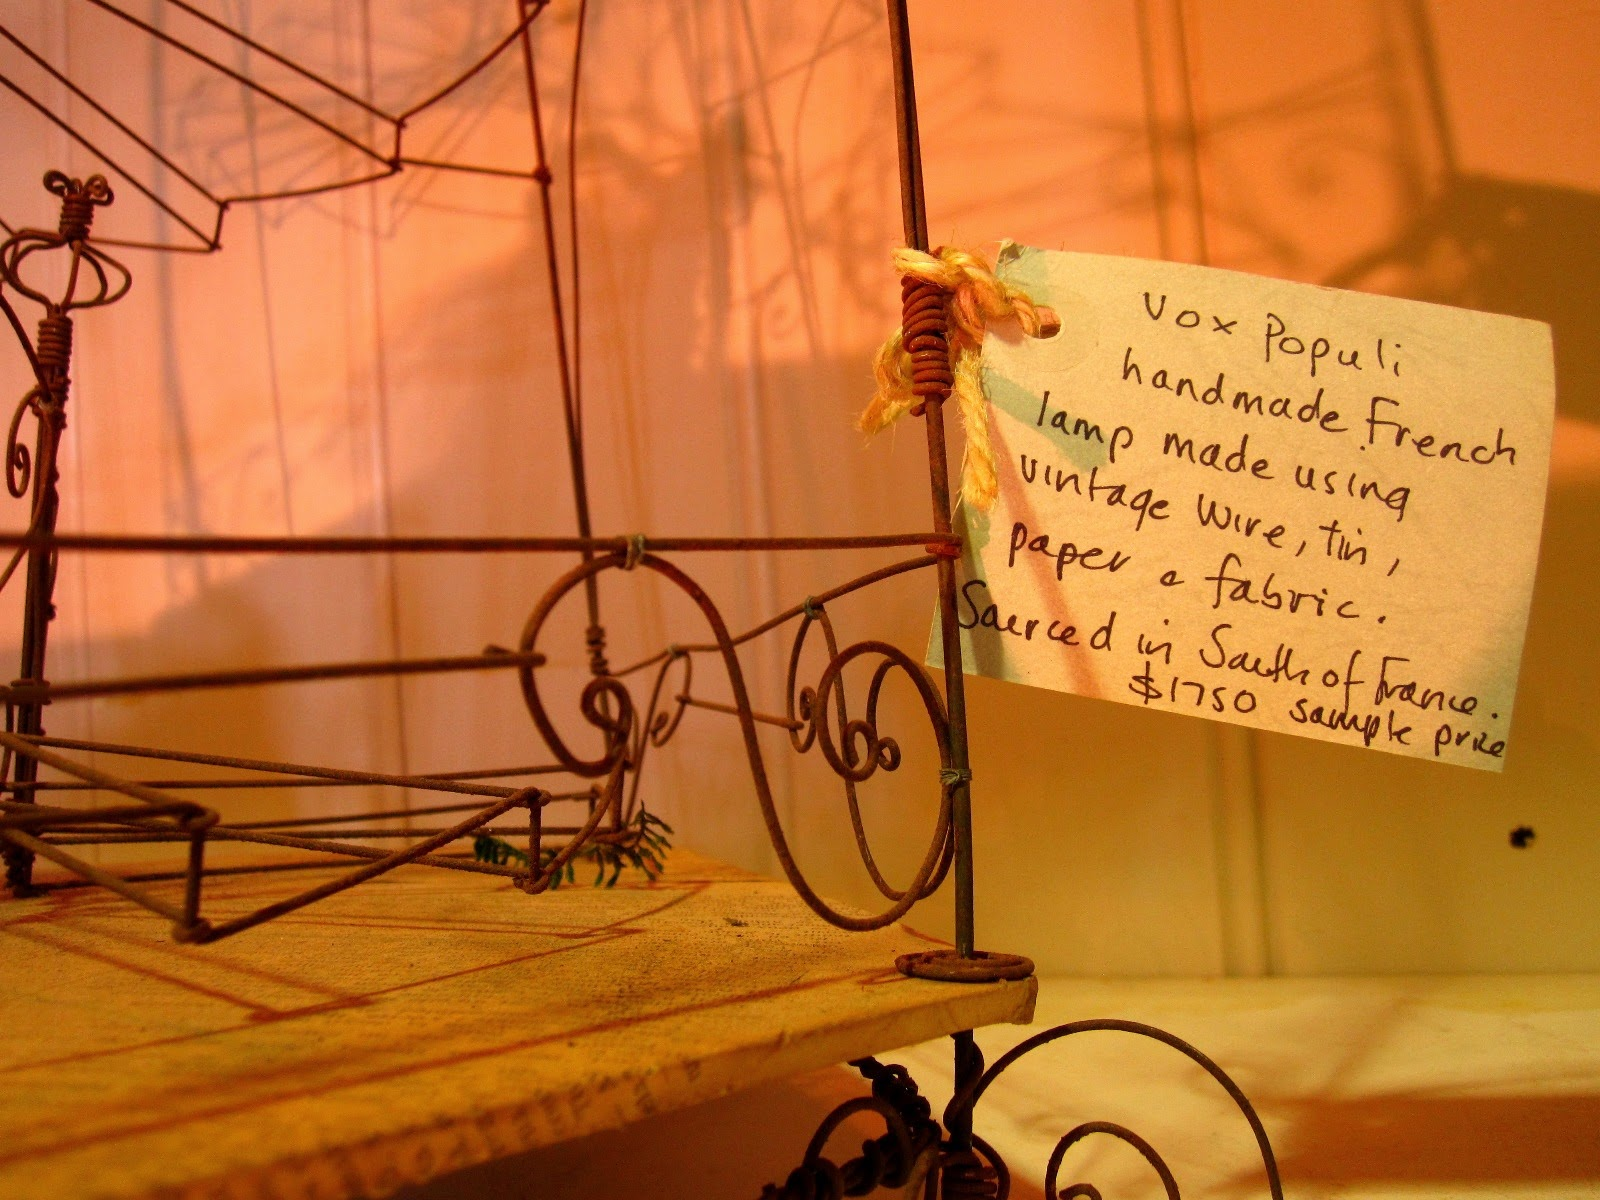 Price tag which reads 'Vox Populi handmade French lamp made using vintage wire, tin, paper and fabric. Sourced in South of France $1750 sample price.'